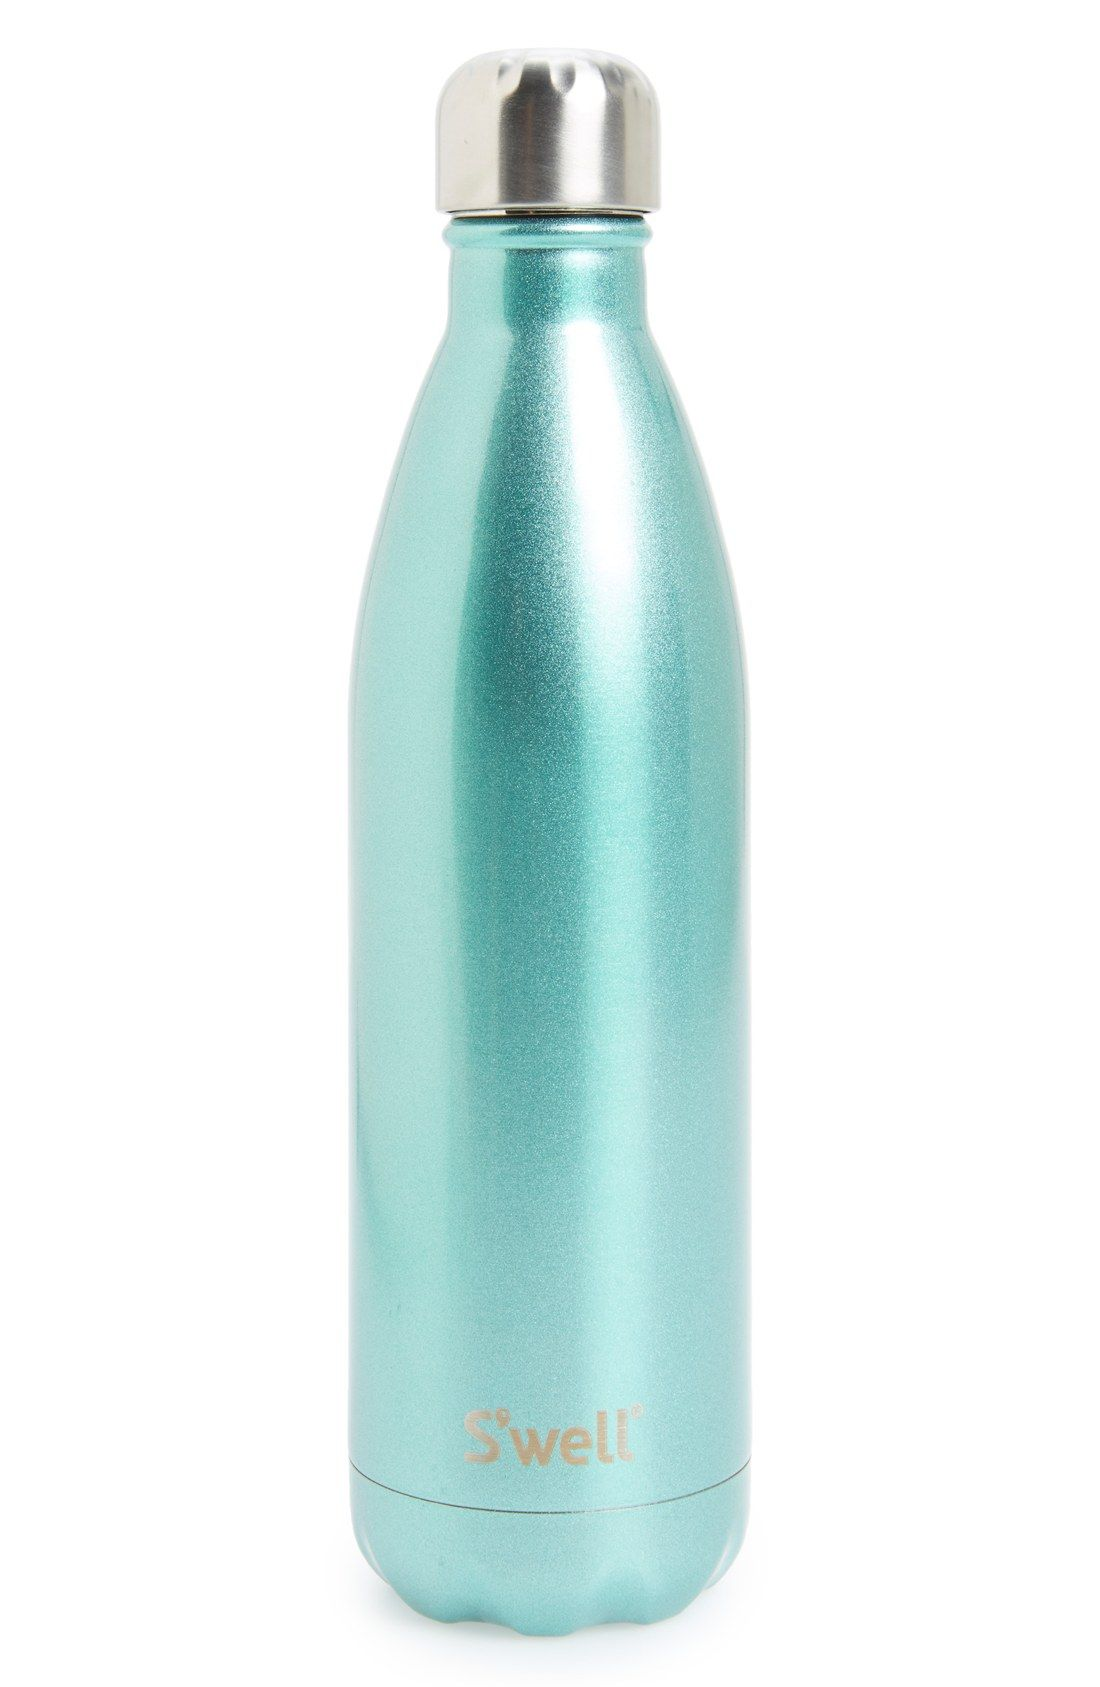 26a961e9c093 This color! :: 'Sweet Mint' Insulated Stainless Steel Water Bottle ...